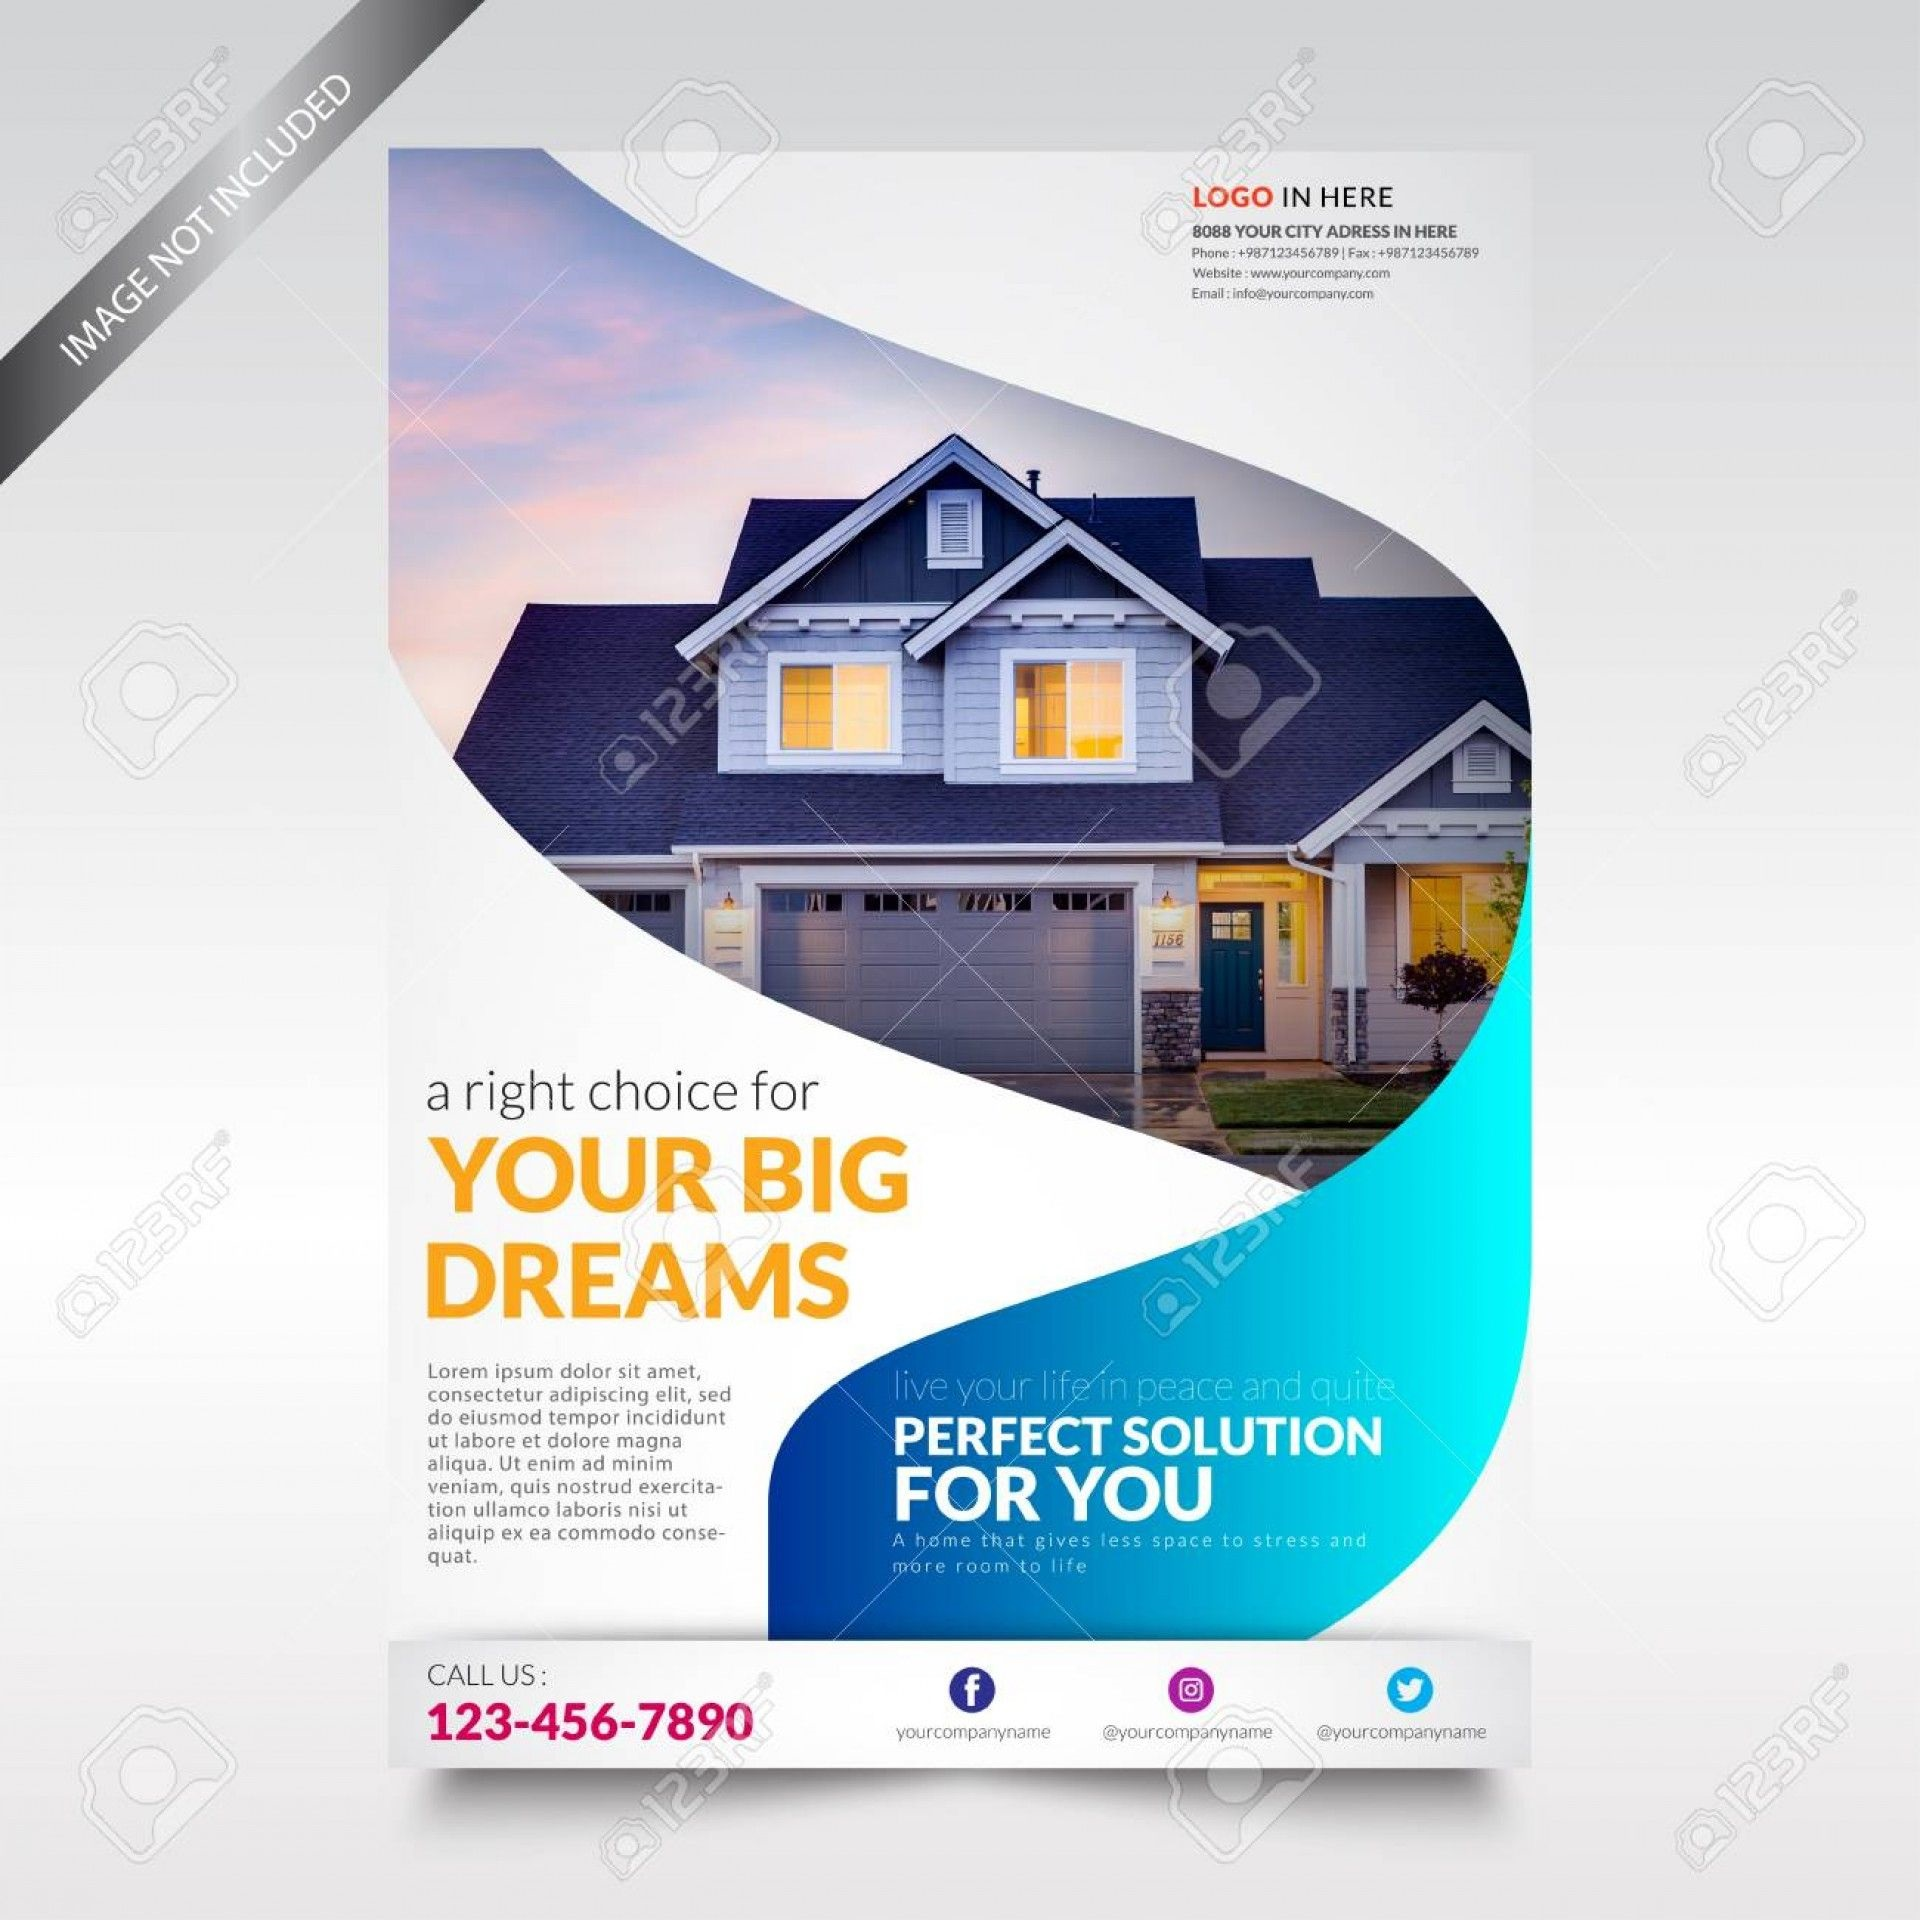 001 Unusual Real Estate Advertising Template Image  Ad Newspaper Classified